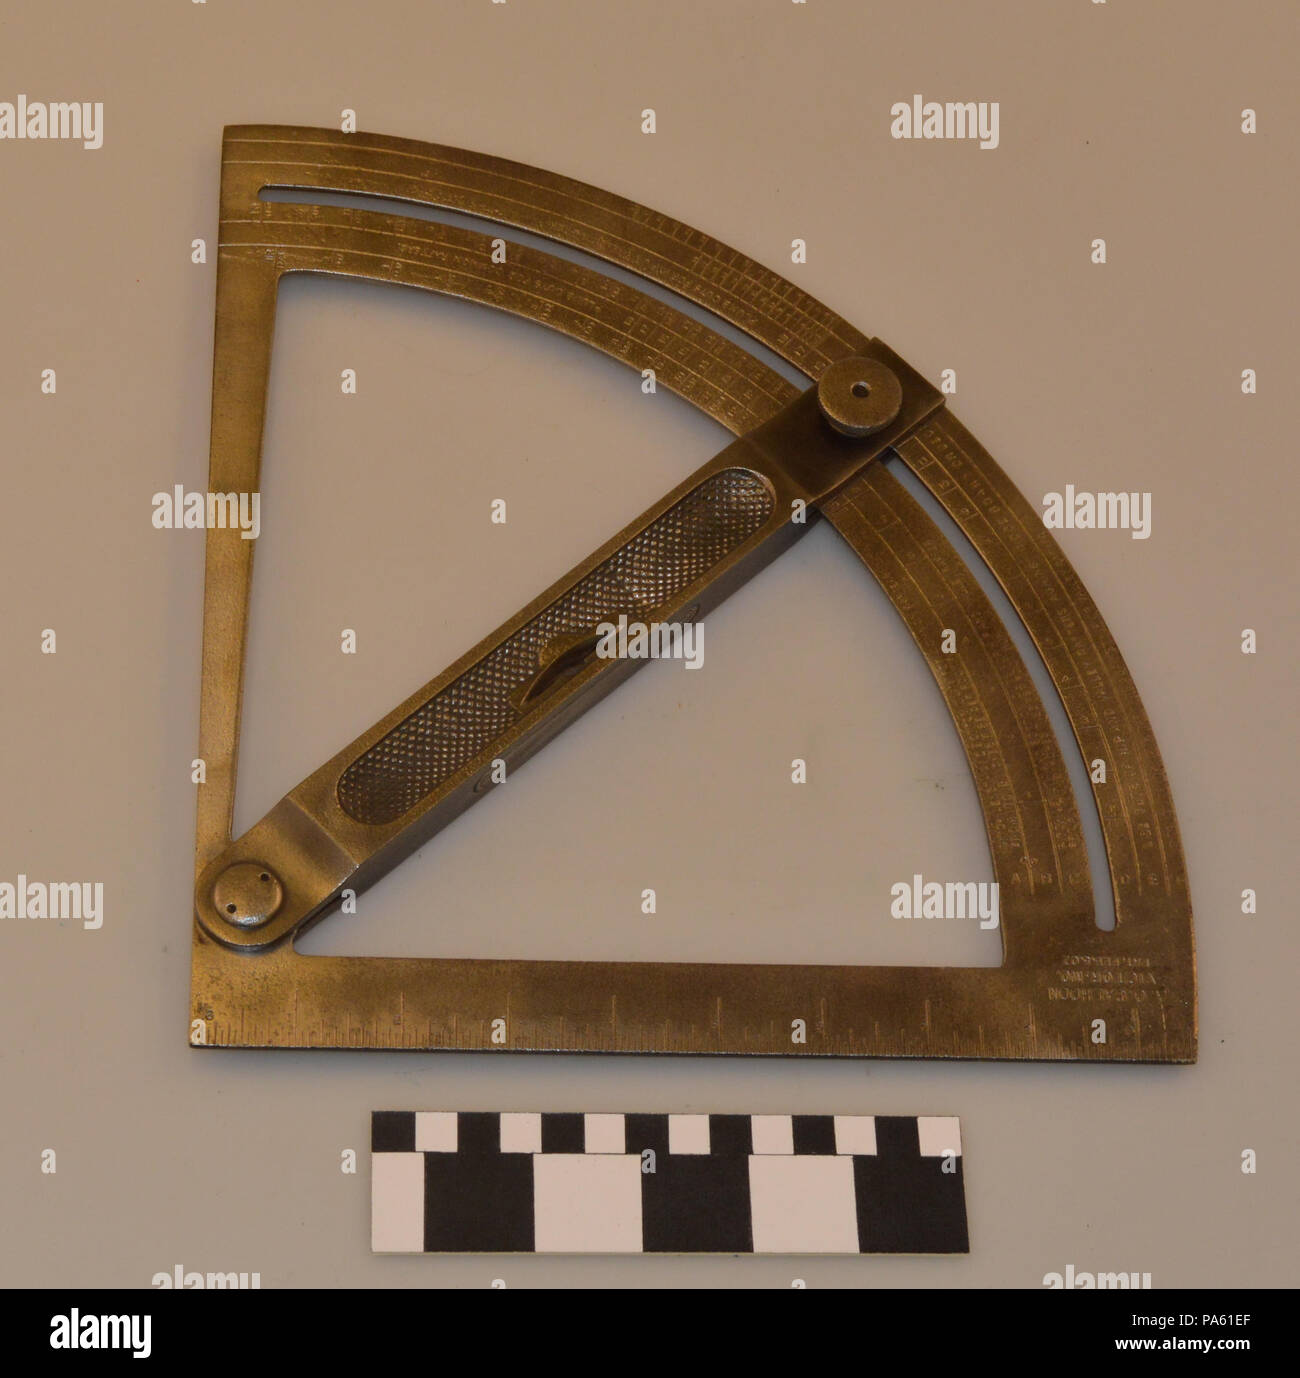 94 A.O. Calhoon Rafter and Polygon Bevel Gauge - Stock Image